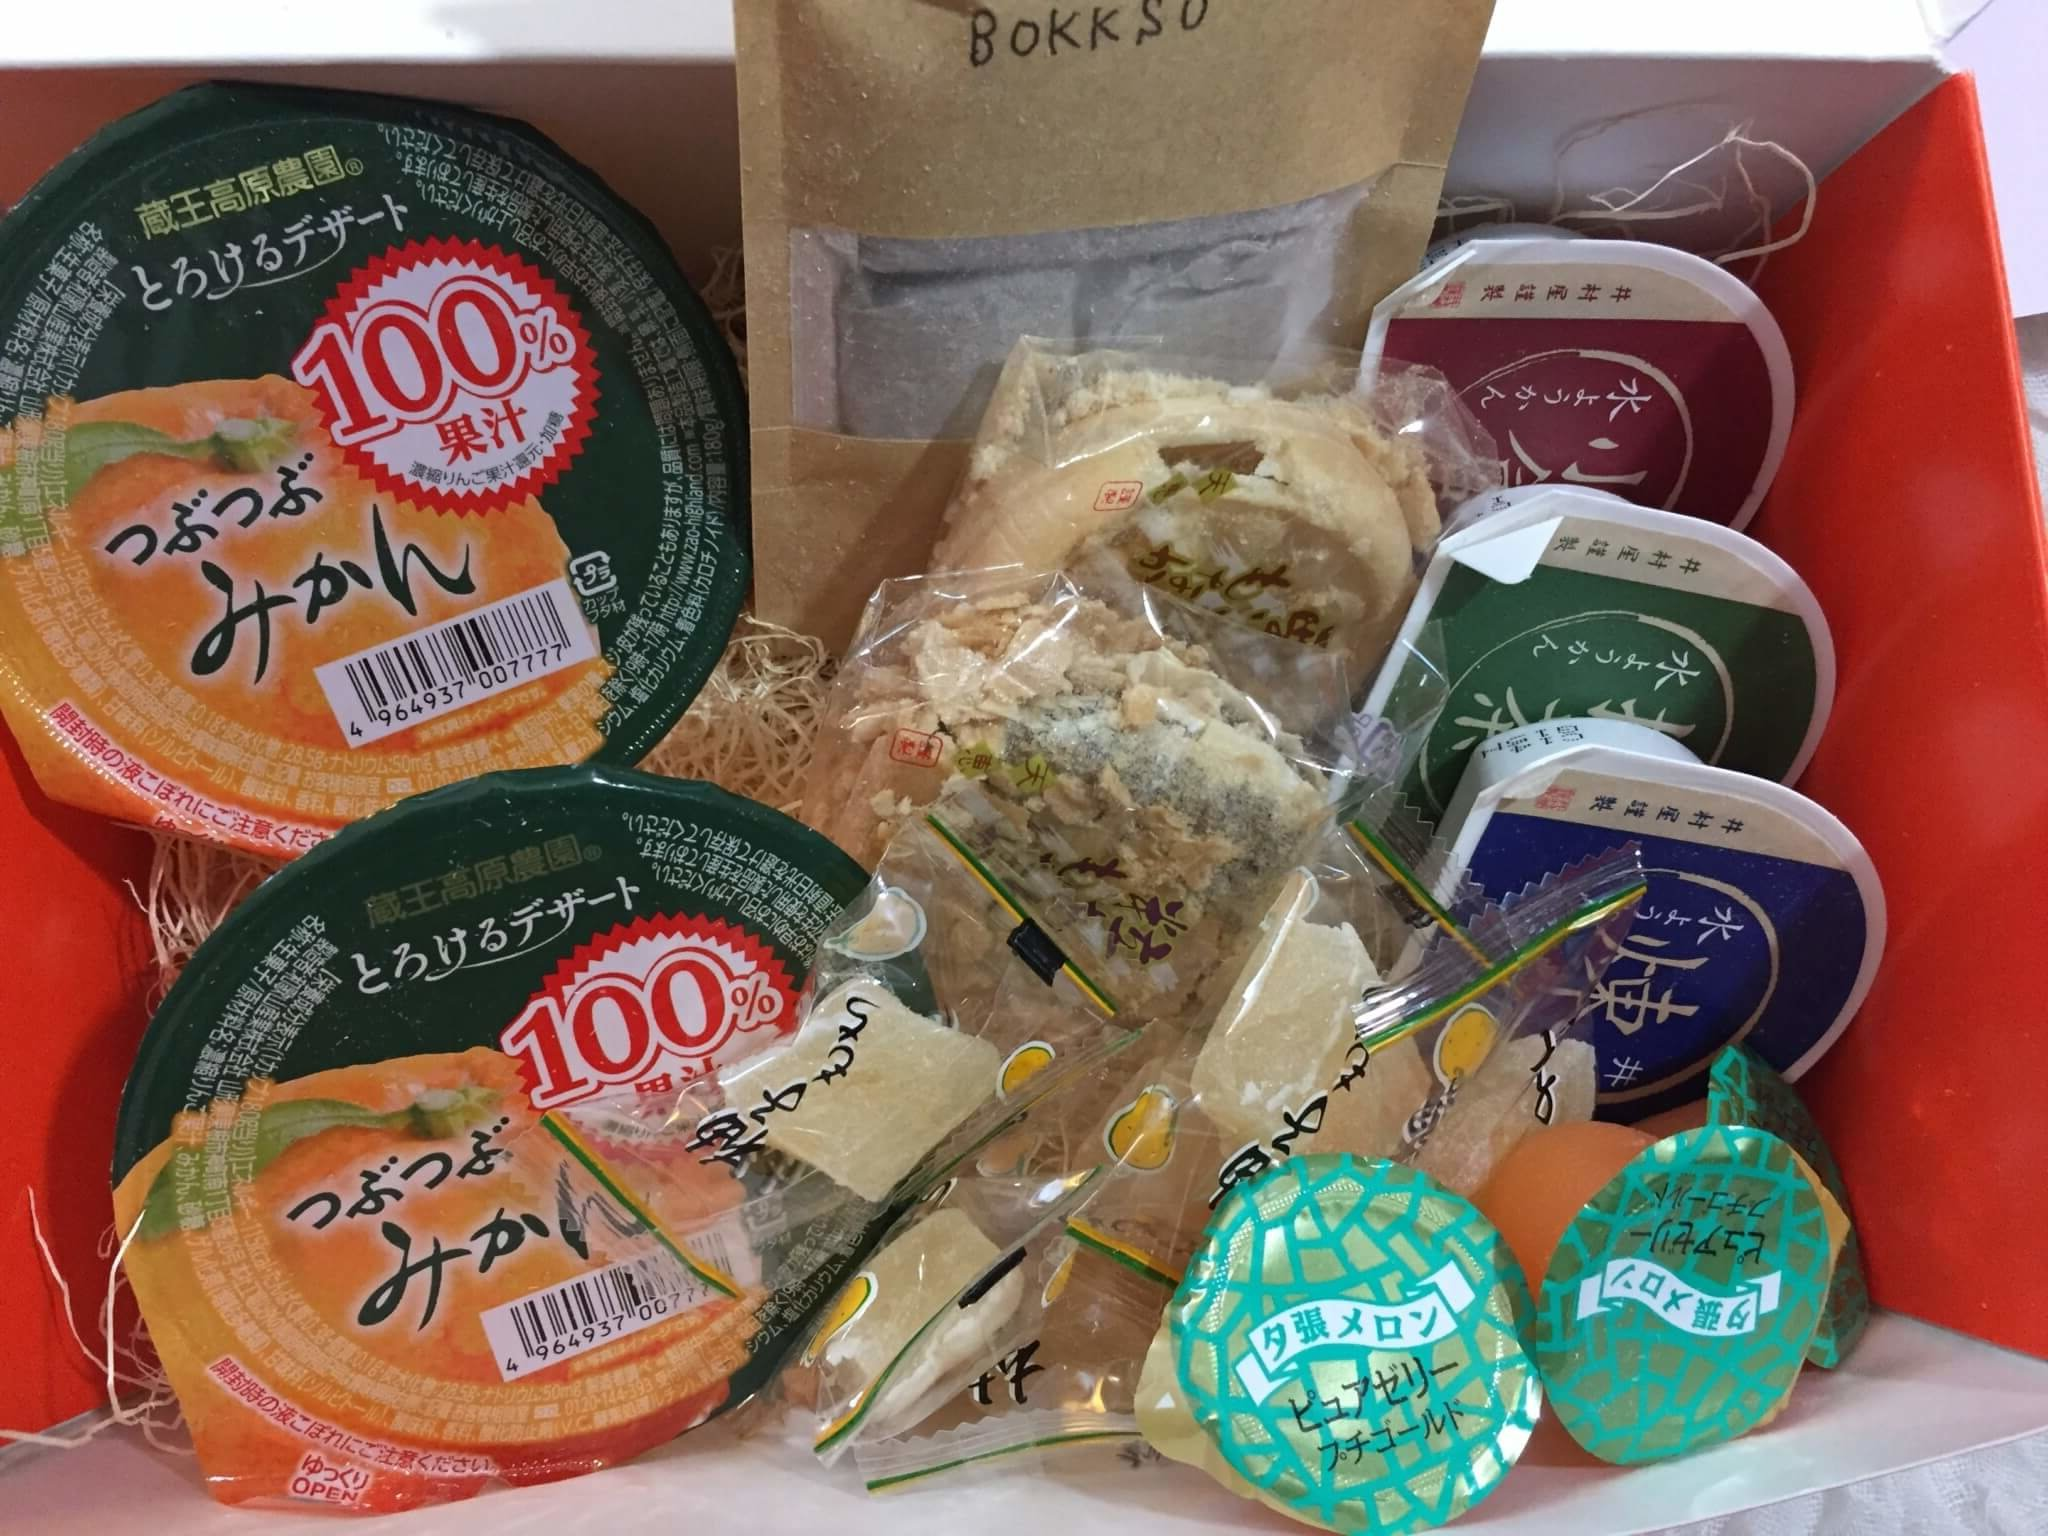 Bokksu July 2016 Subscription Box Review + Coupon